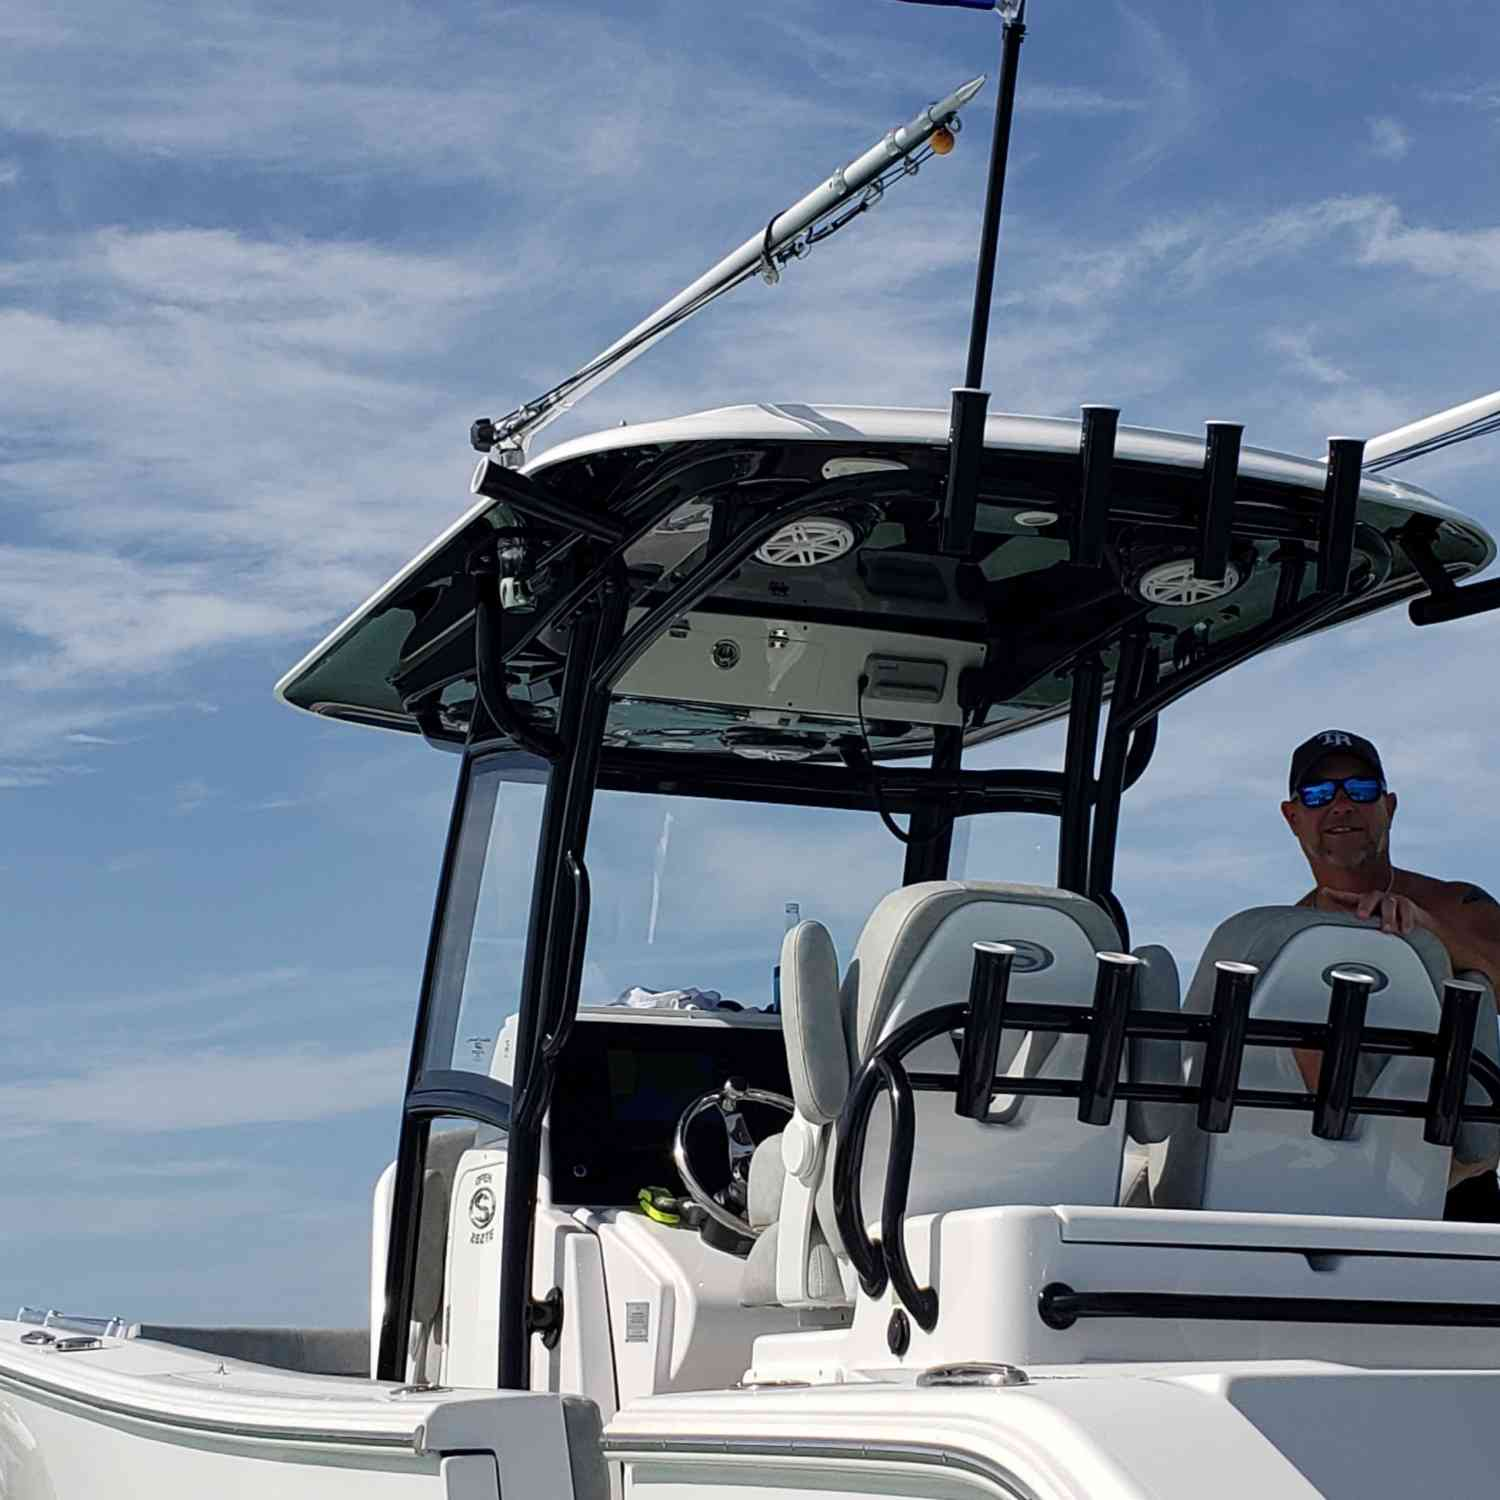 Title: Lets make boating great again - On board their Sportsman Open 282TE Center Console - Location: anna maria Island florida. Participating in the Photo Contest #SportsmanAugust2020